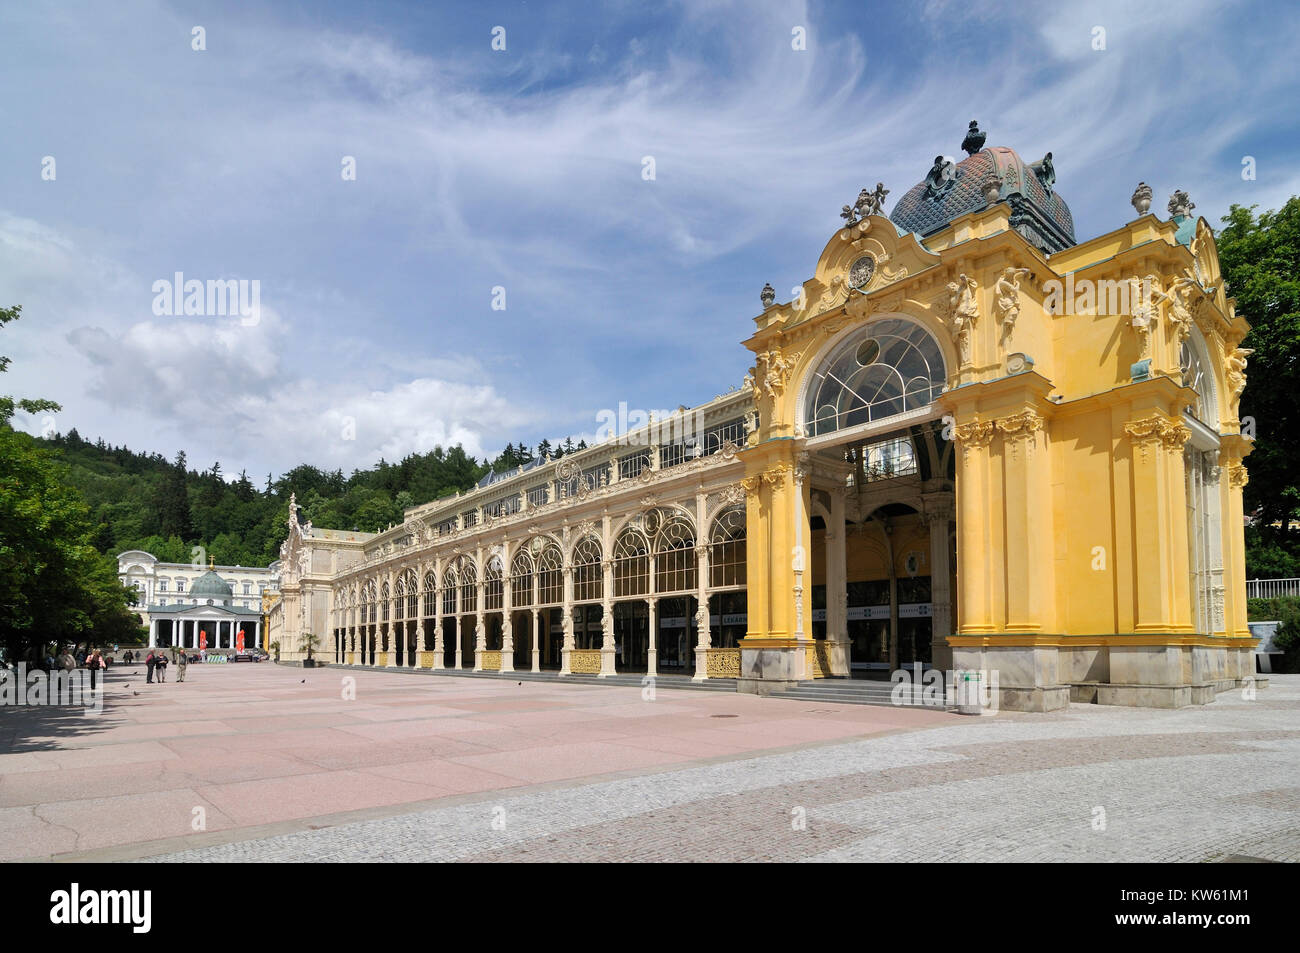 Heilbad Stock Photos & Heilbad Stock Images - Page 2 - Alamy